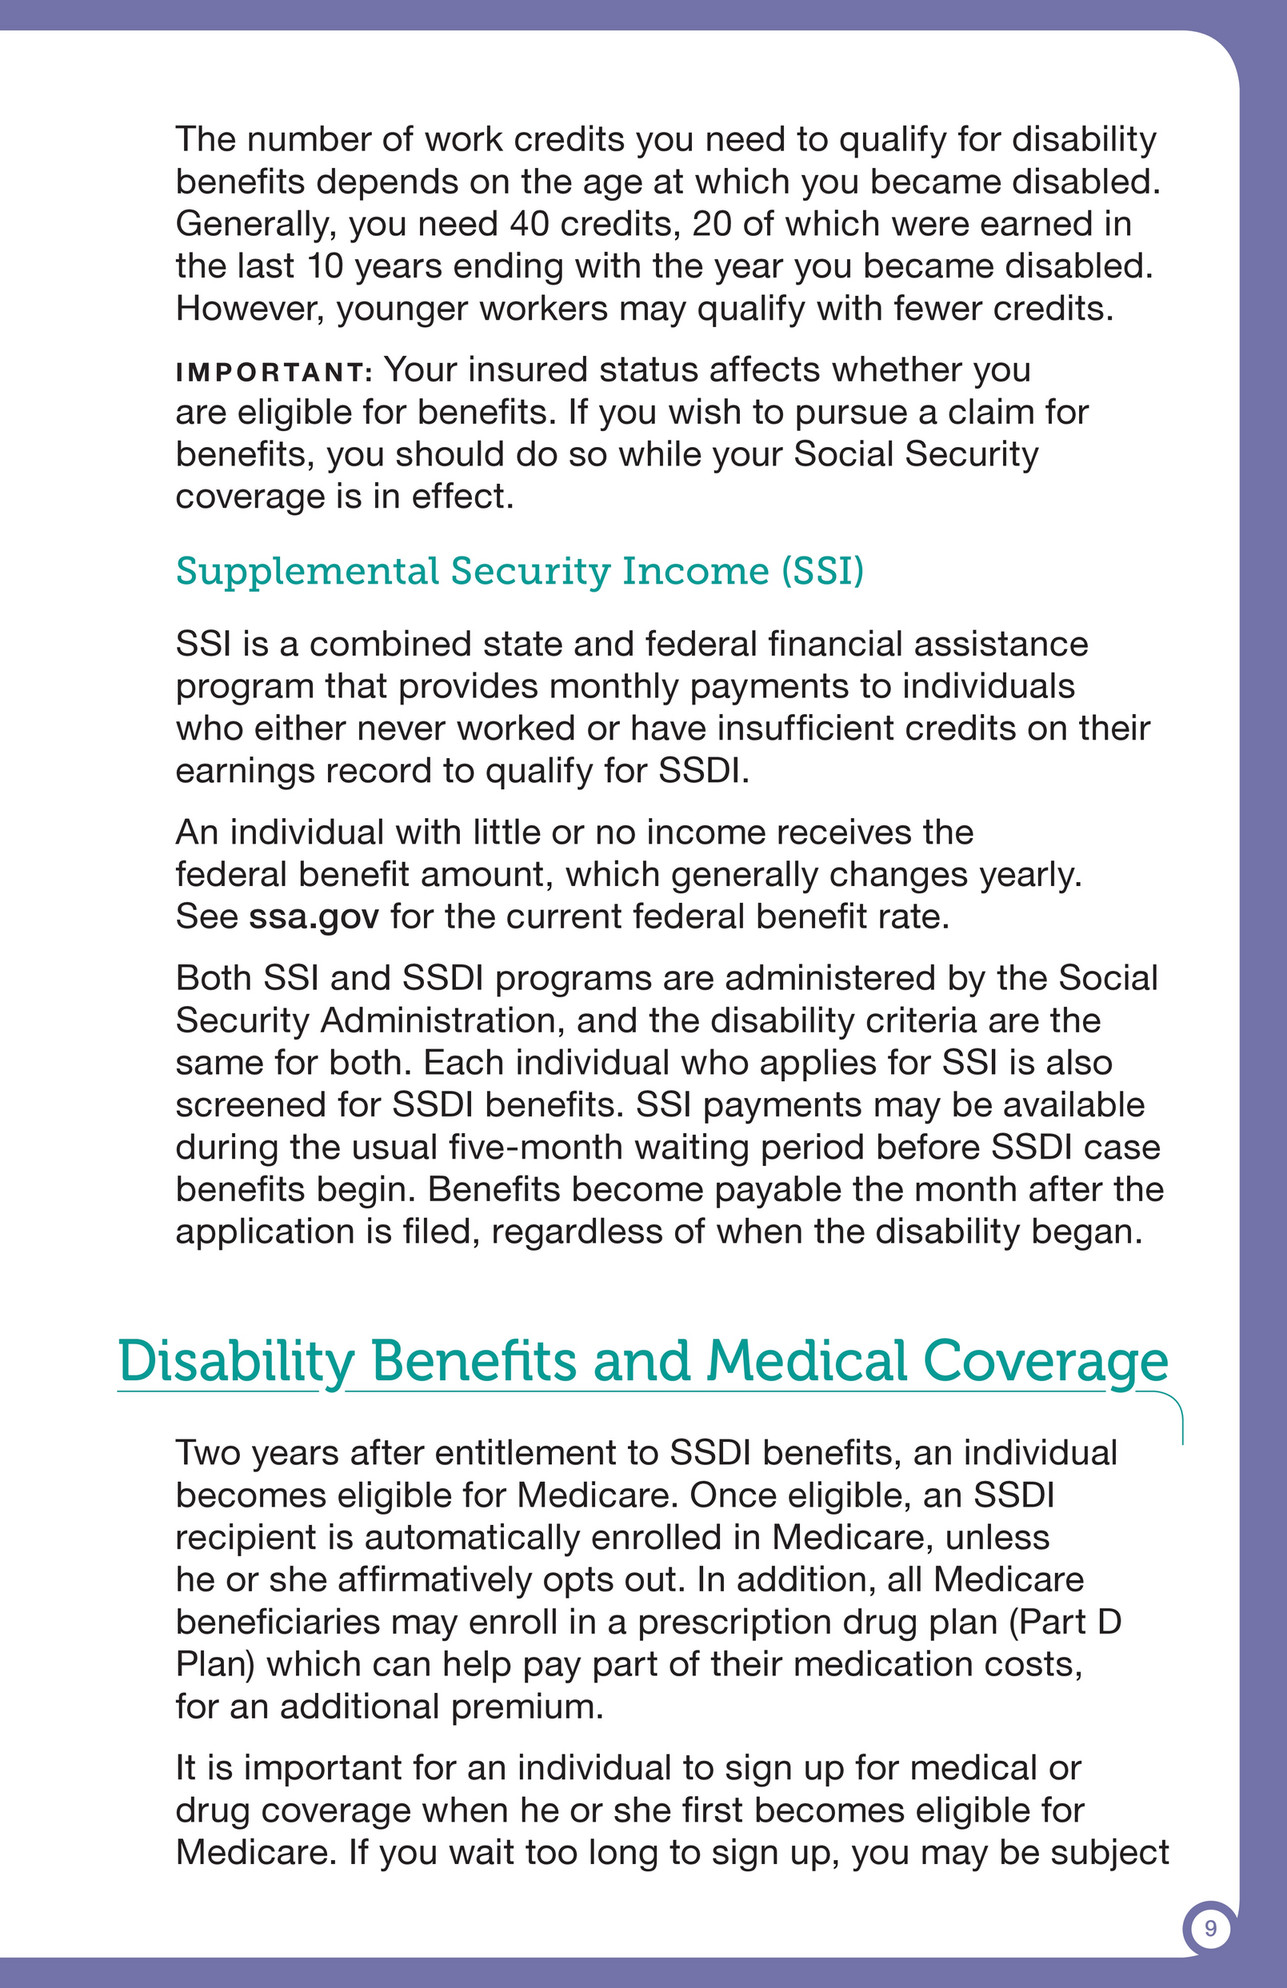 Drug Coverage When He Or She First Becomes Eligible For Medicare If You  Wait Too Long To Sign Up, You May Be Subject